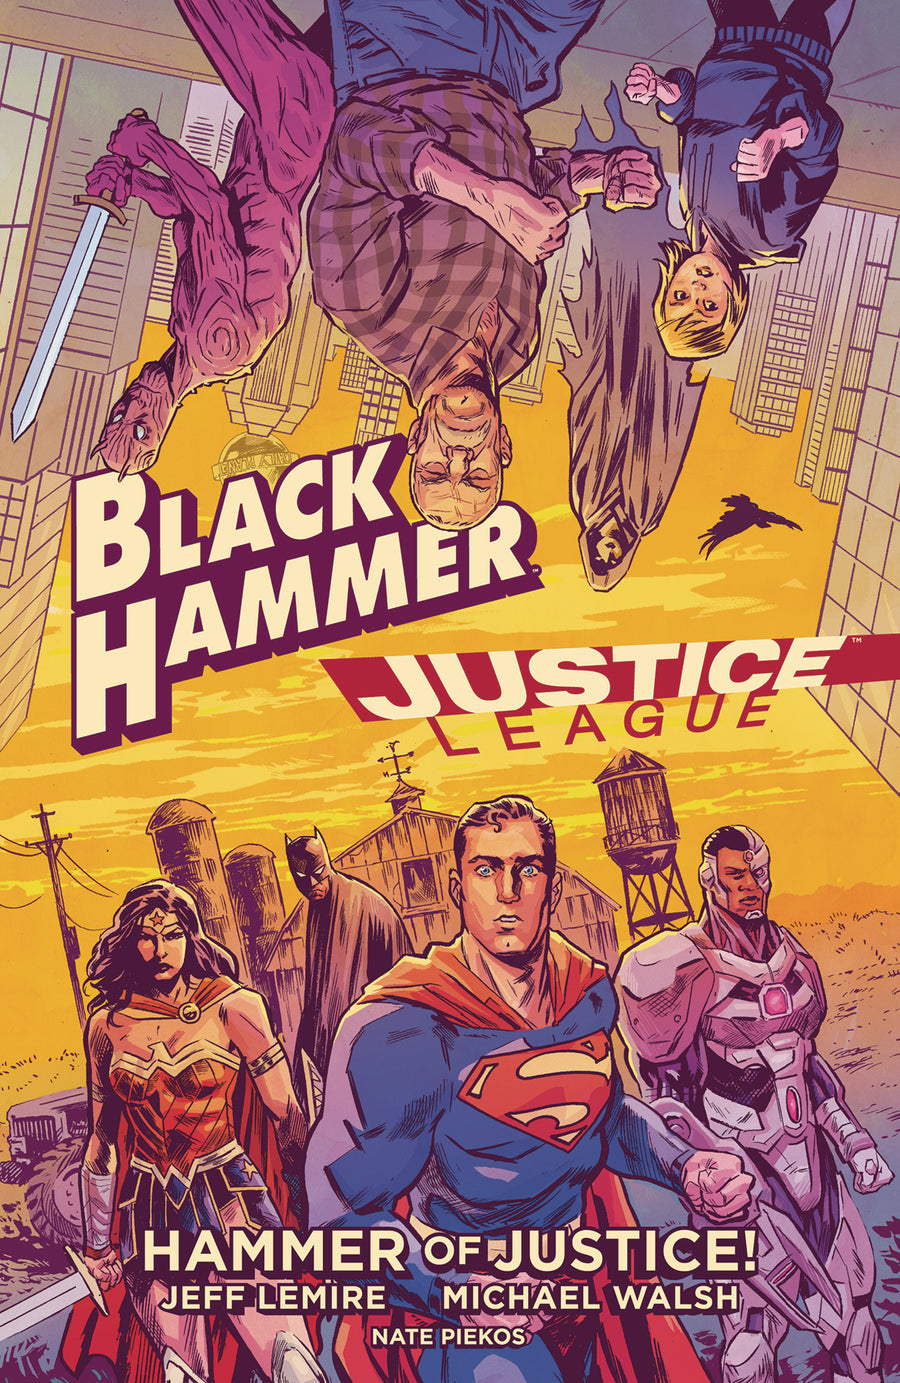 Black Hammer Justice League: Hammer of Justice Hardcover